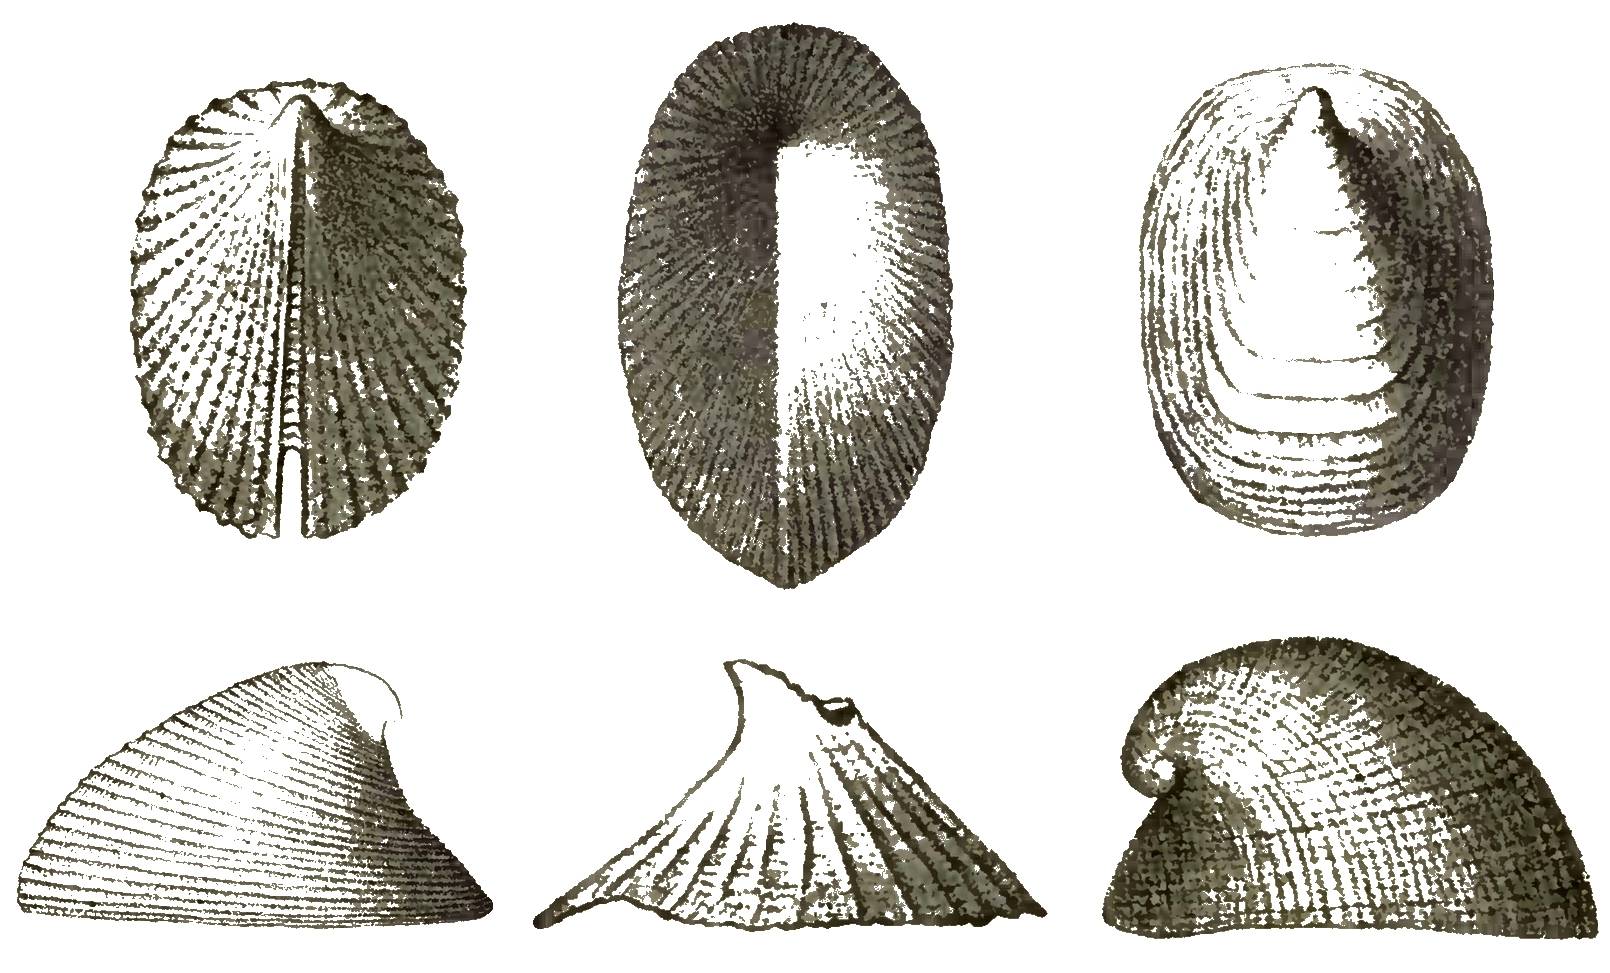 Image of Cocculinidae